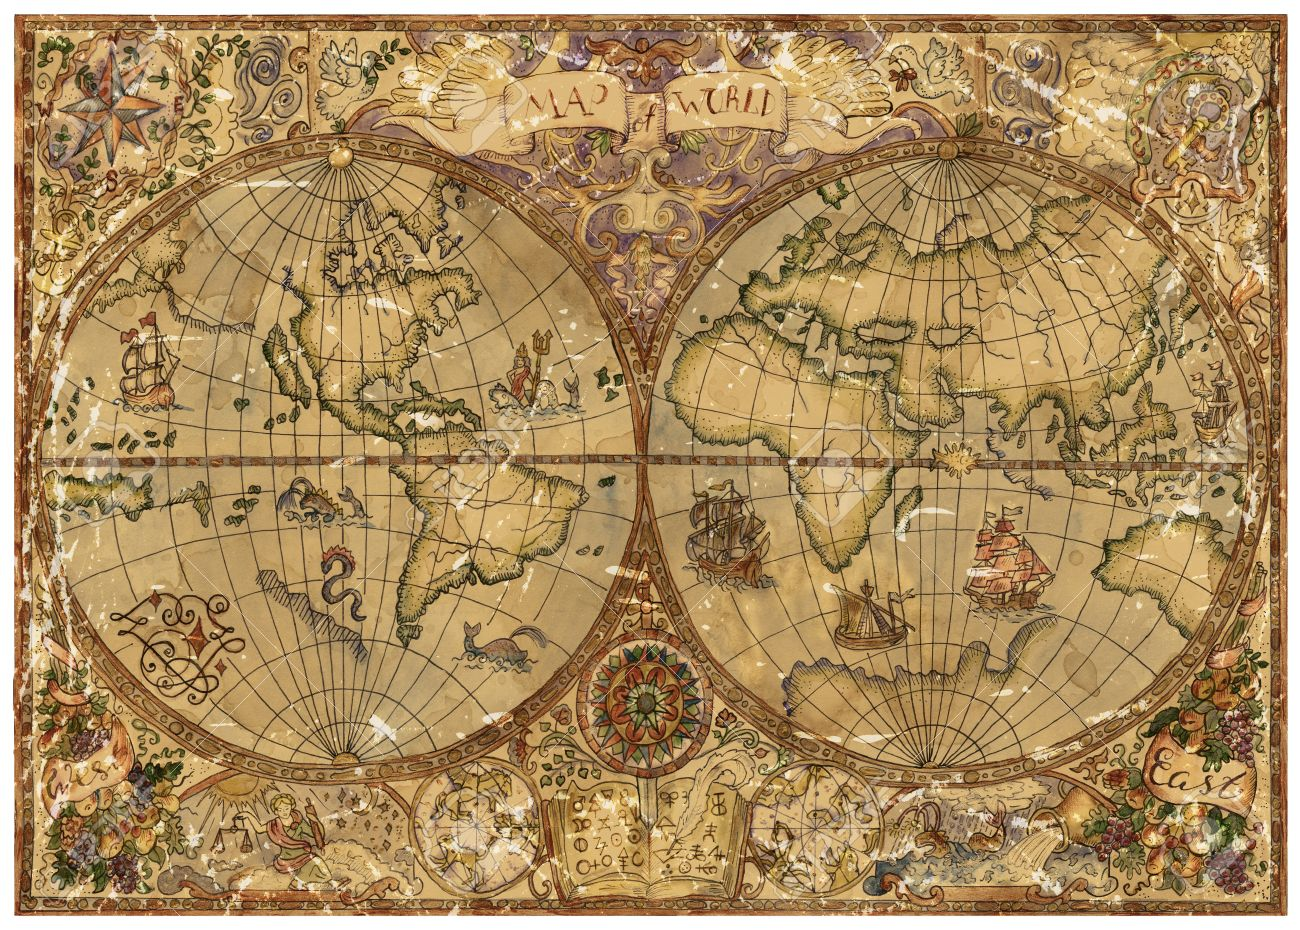 Pirate World Map.Vintage Illustration With World Atlas Map On Antique Parchment